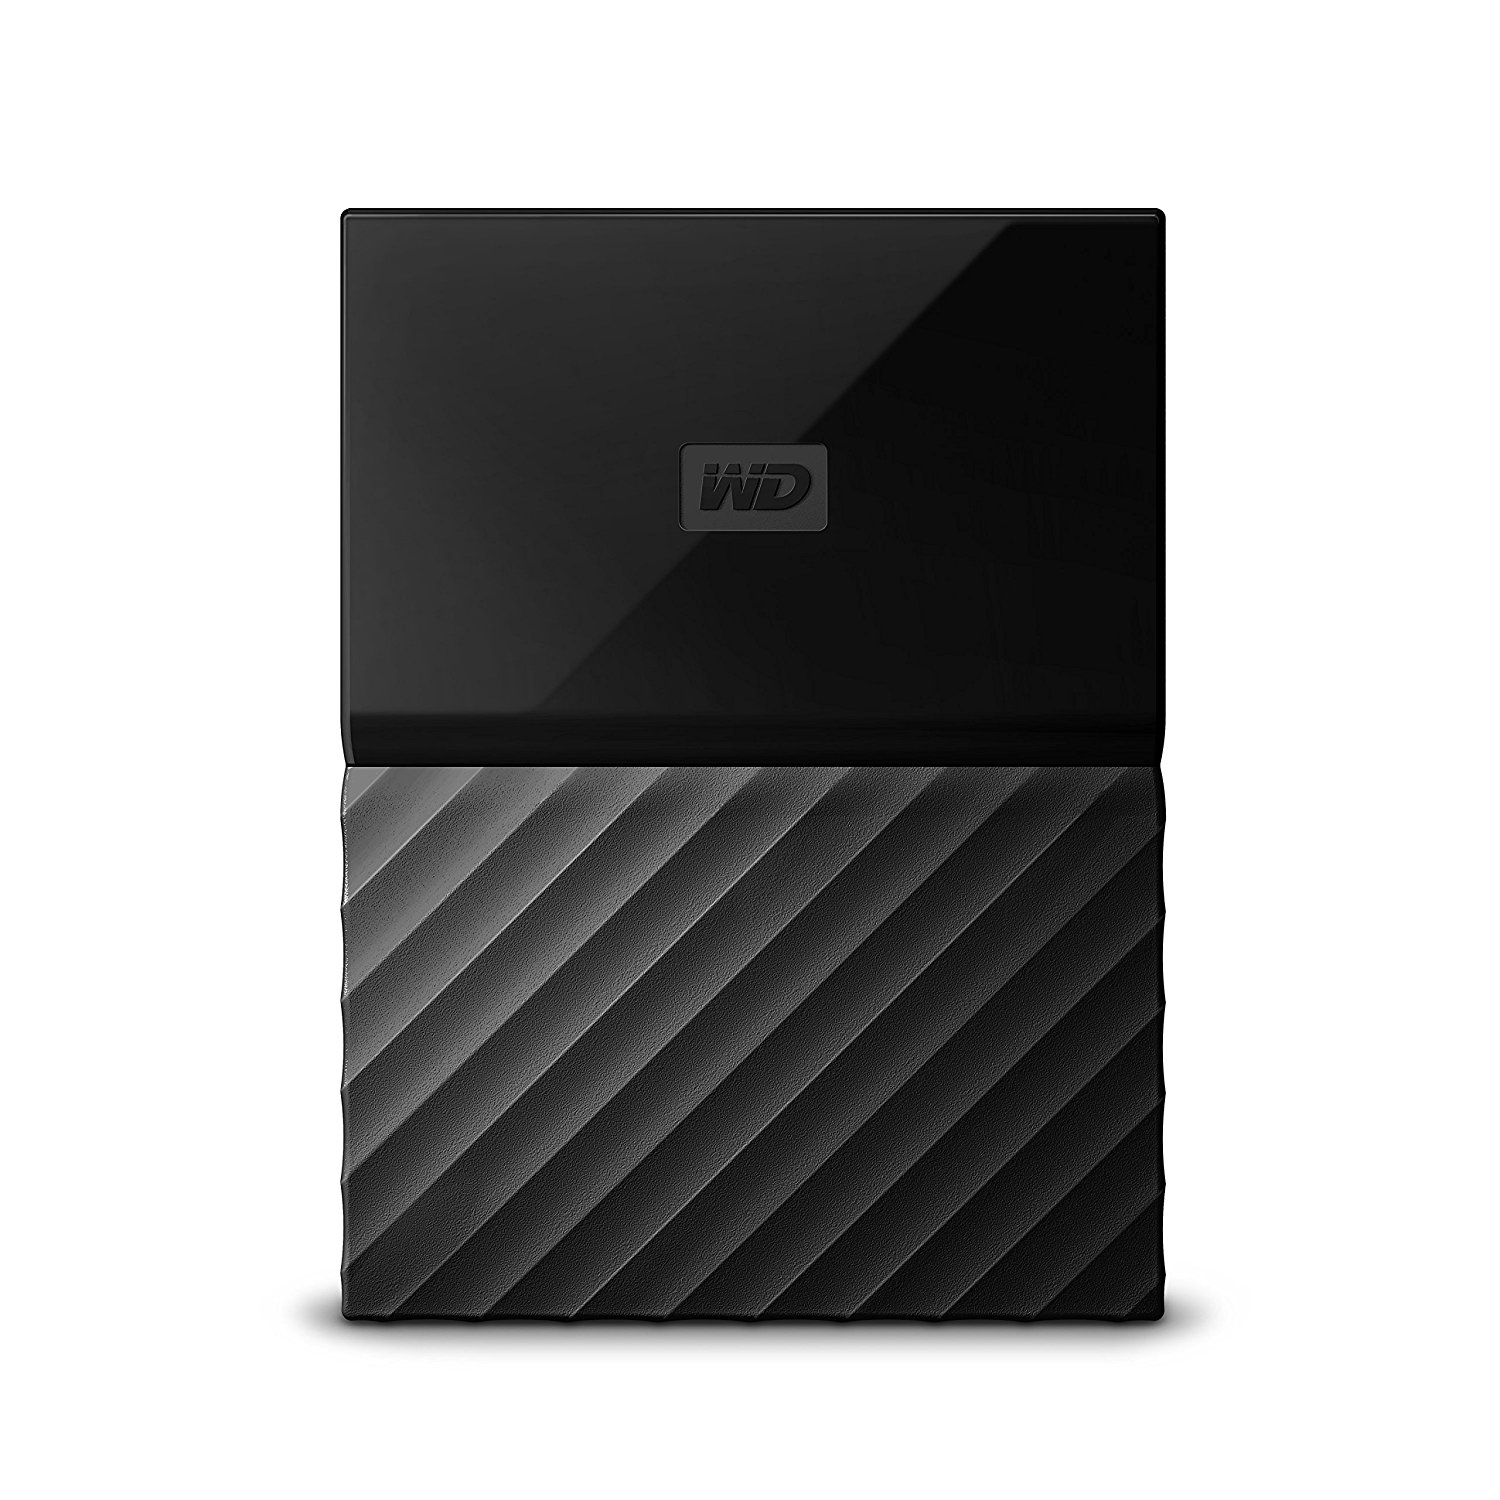 WD 1TB Black USB 3.0 My Passport Portable External Hard Drive